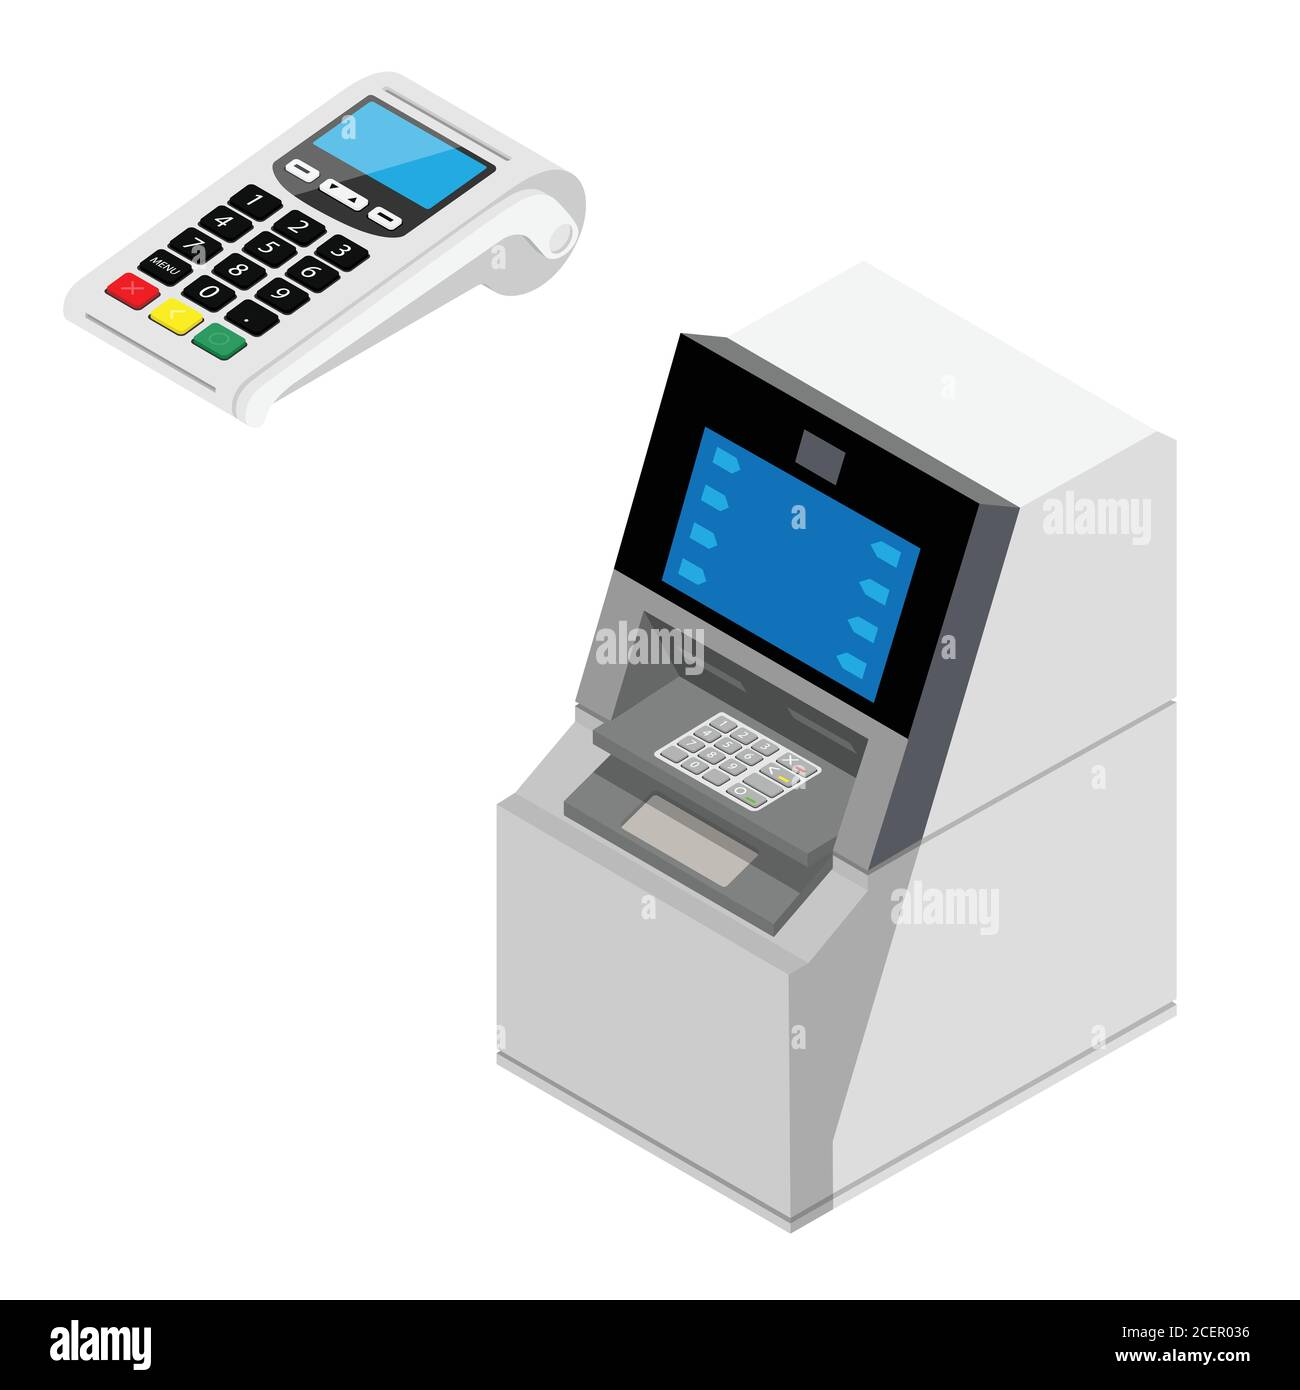 automated payout machines betting terminals at jfk